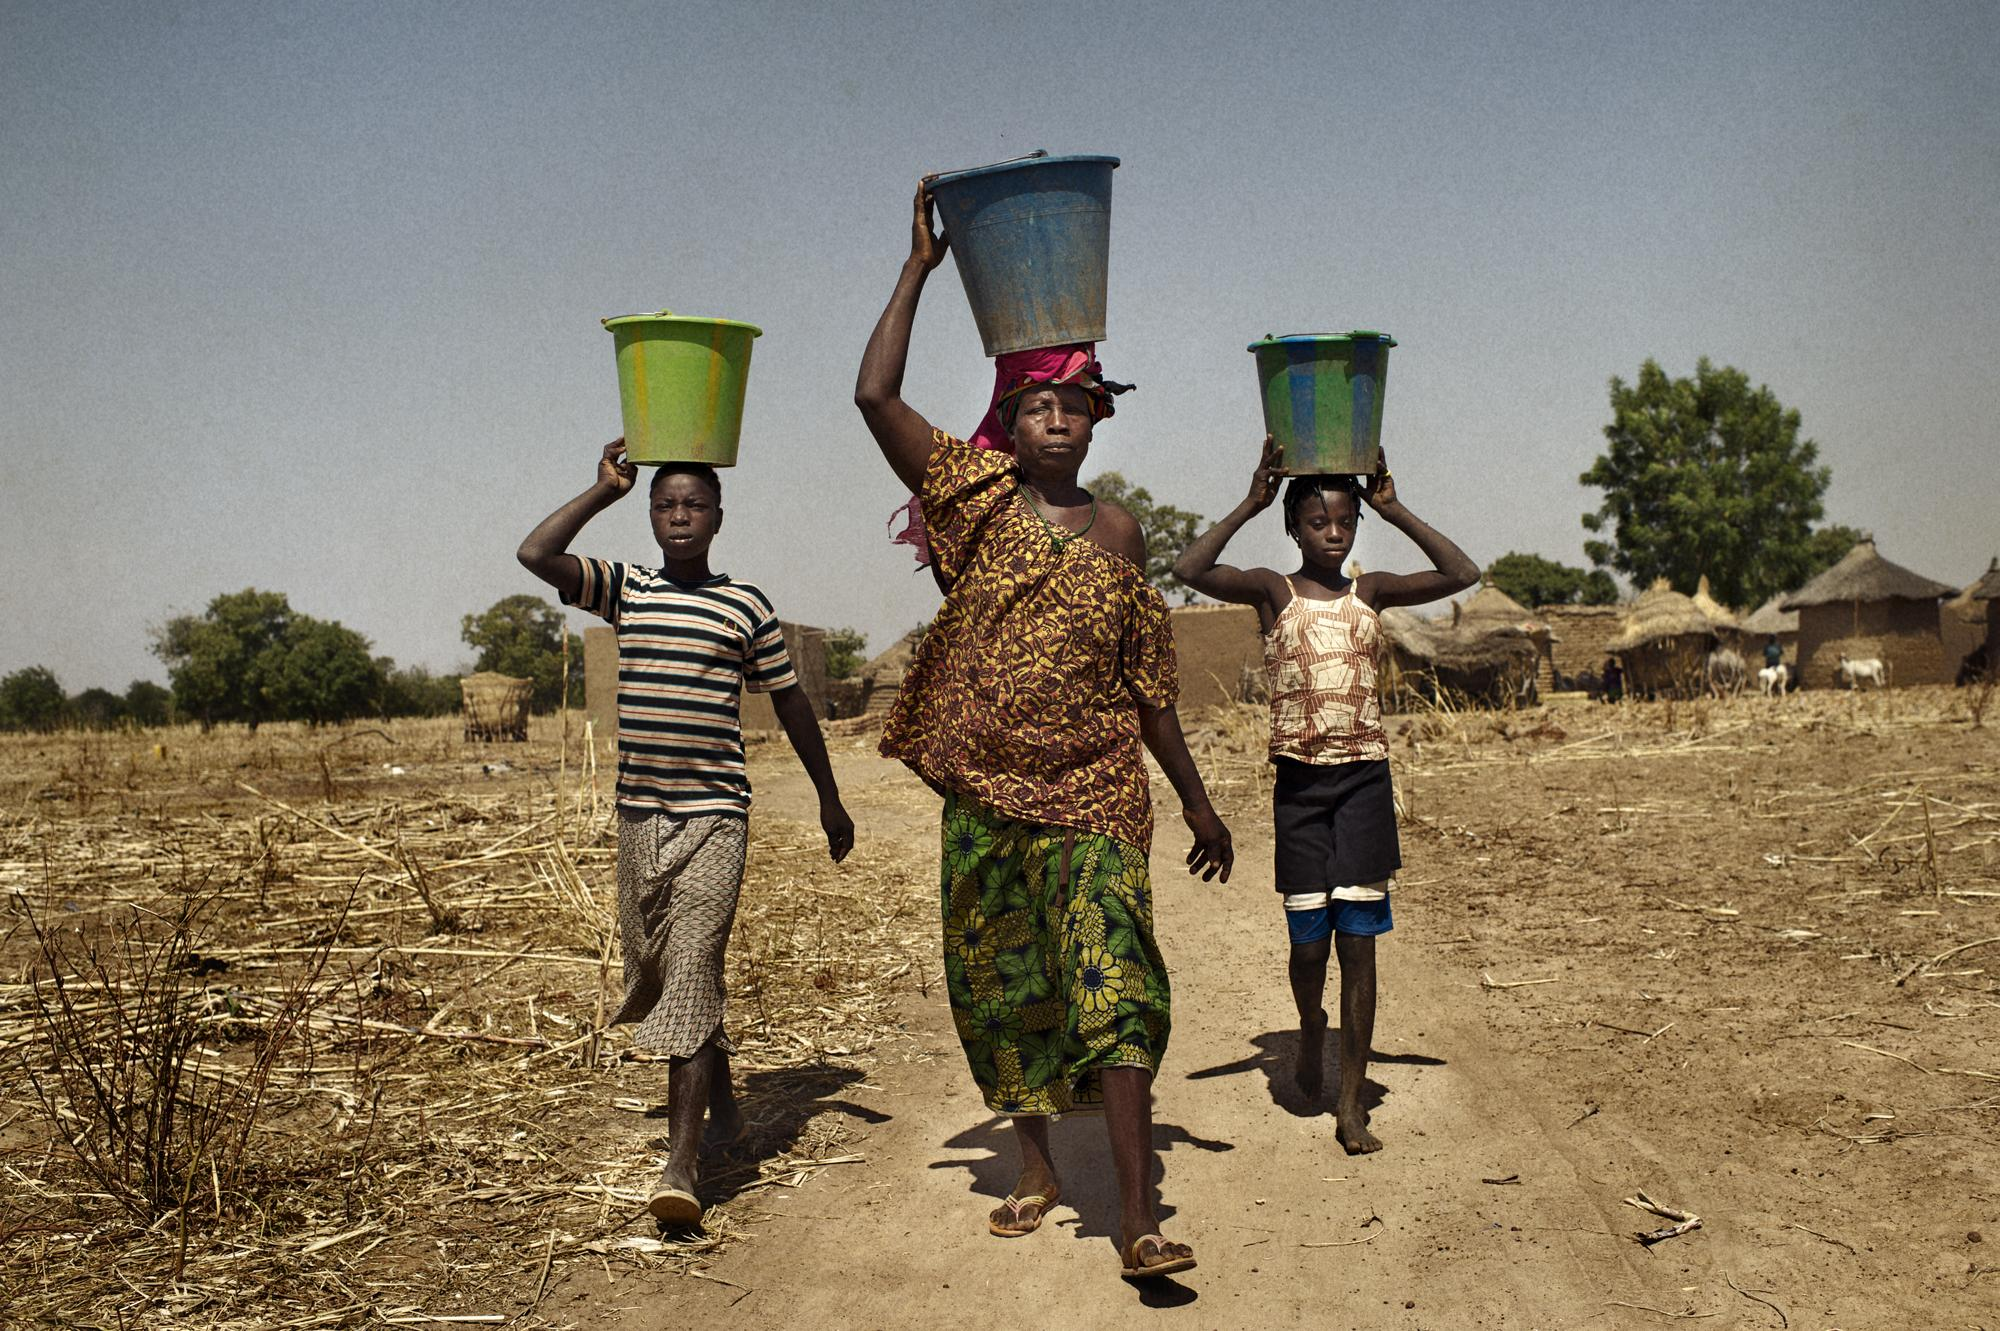 """Burkina Faso, Moyaorgo. November 2011. Abzeta Derra with her grand children going to fetch water, Azbeta makes a living from selling """"Soumbala"""" at the market. Abzeta is sixty-nine years old and has nine children. She started her first microcredit in April 2011with GASCODE program (Groupe d'Appui en Santé, Communication et Developpement) a local organization that supports poor women."""